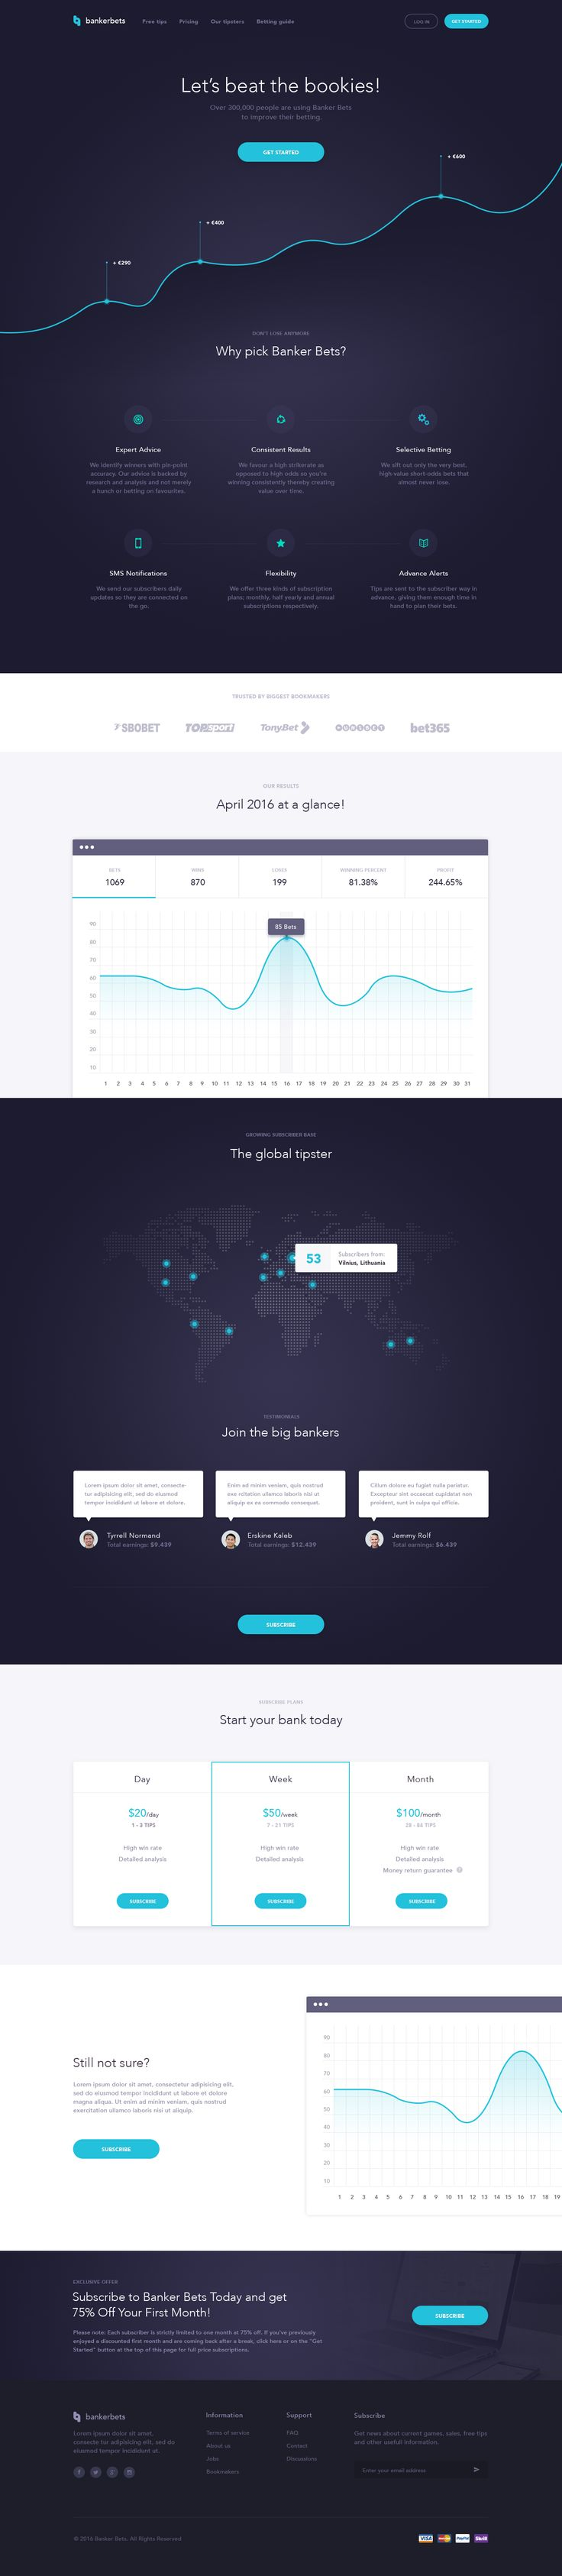 Bankerbets landing page. I like the testimonials with the map. Makes it look like we have a lot of users around the world and then highlight a few of them